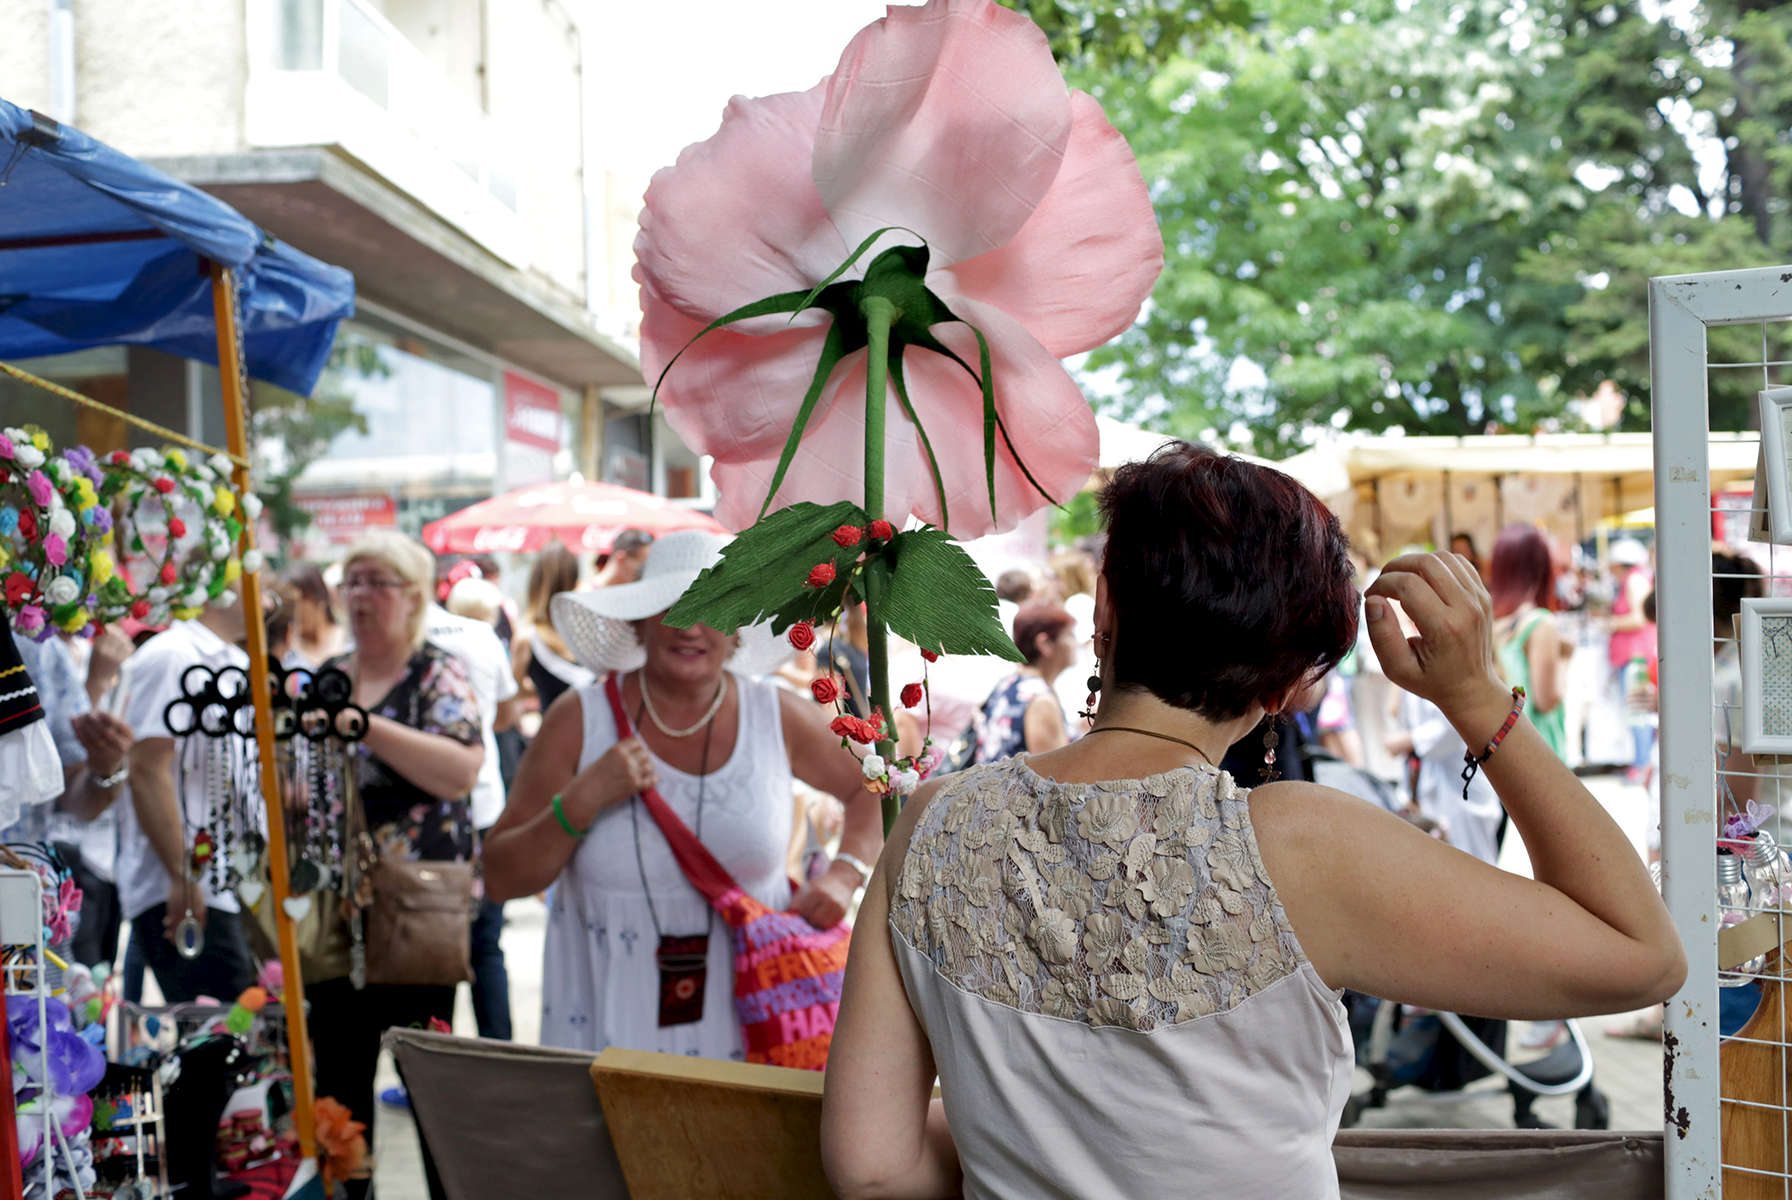 Crowds fill the town center lined with vendors selling rose merchandise after {quote}The Wisdom of the Rose{quote} parade, which is a part of the Rose Festival, on June 03, 2018 in Kazanlak, Bulgaria. The festival, situated in the Rose Valley of Bulgaria, celebrated 115 years in 2018. Photo by: Yana Paskova for National Geographic Traveler